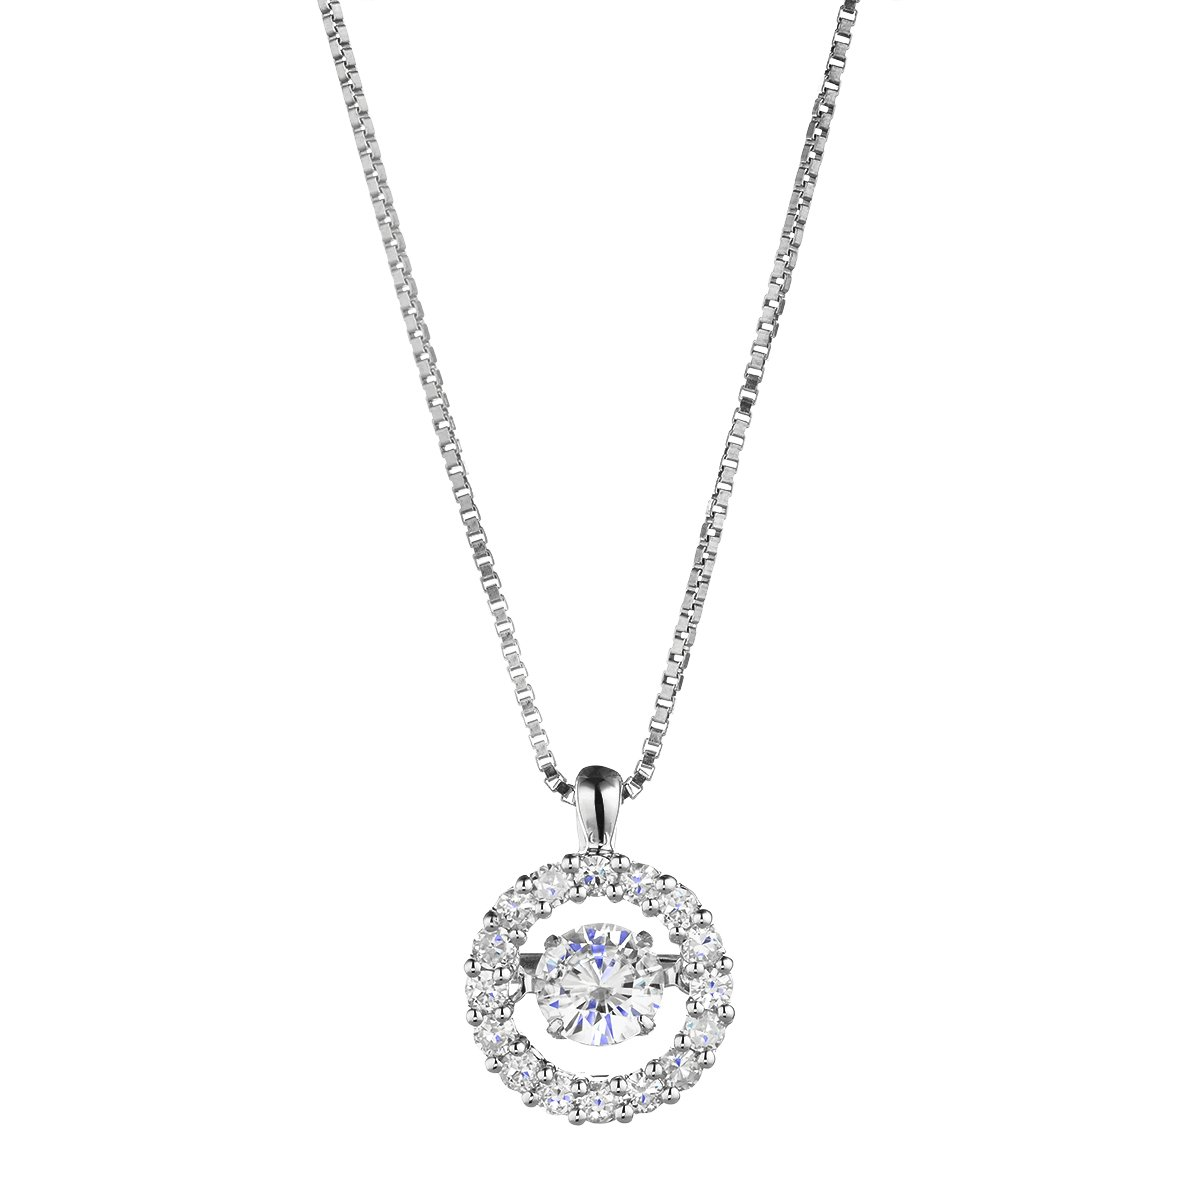 Rhodium-Plated Sterling Silver Moving Pendant, 5.0mm Forever Classic Moissanite By Charles & Colvard by Charles & Colvard